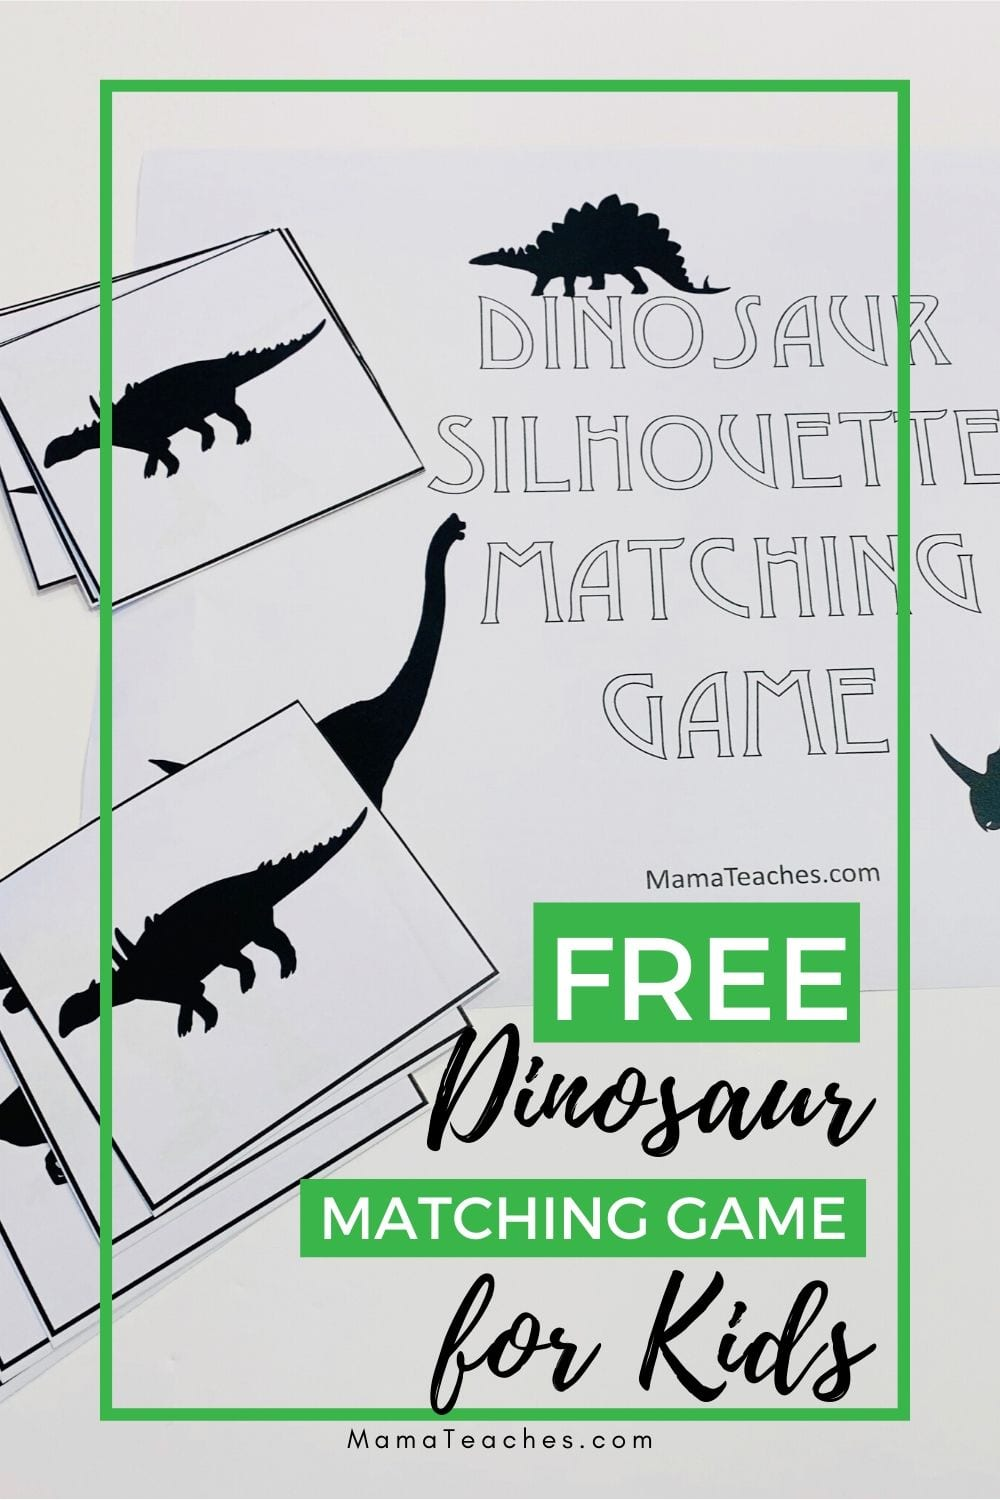 Free Dinosaur Matching Game for Kids - MamaTeaches.com